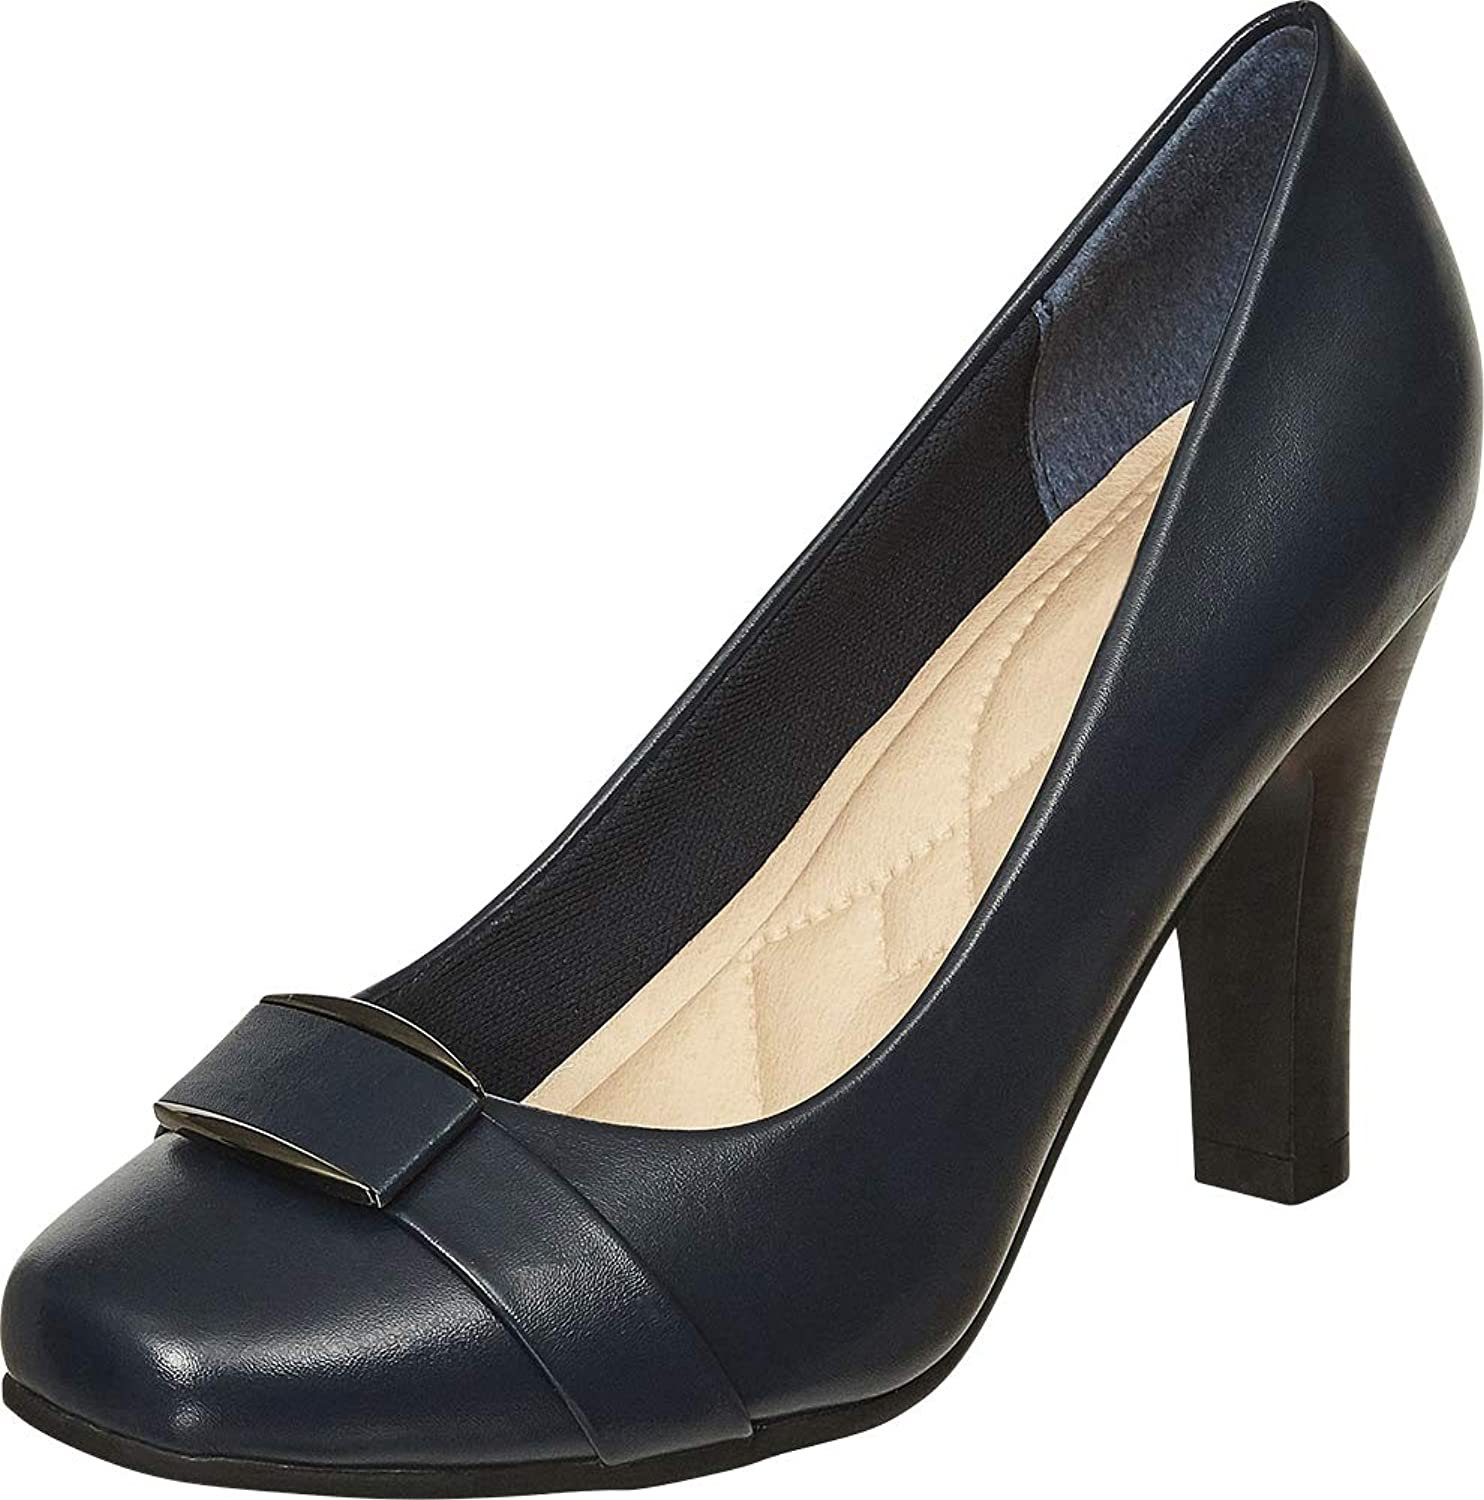 Cambridge Select Women's Square Toe Padded Comfort Tapered High Heel Pump